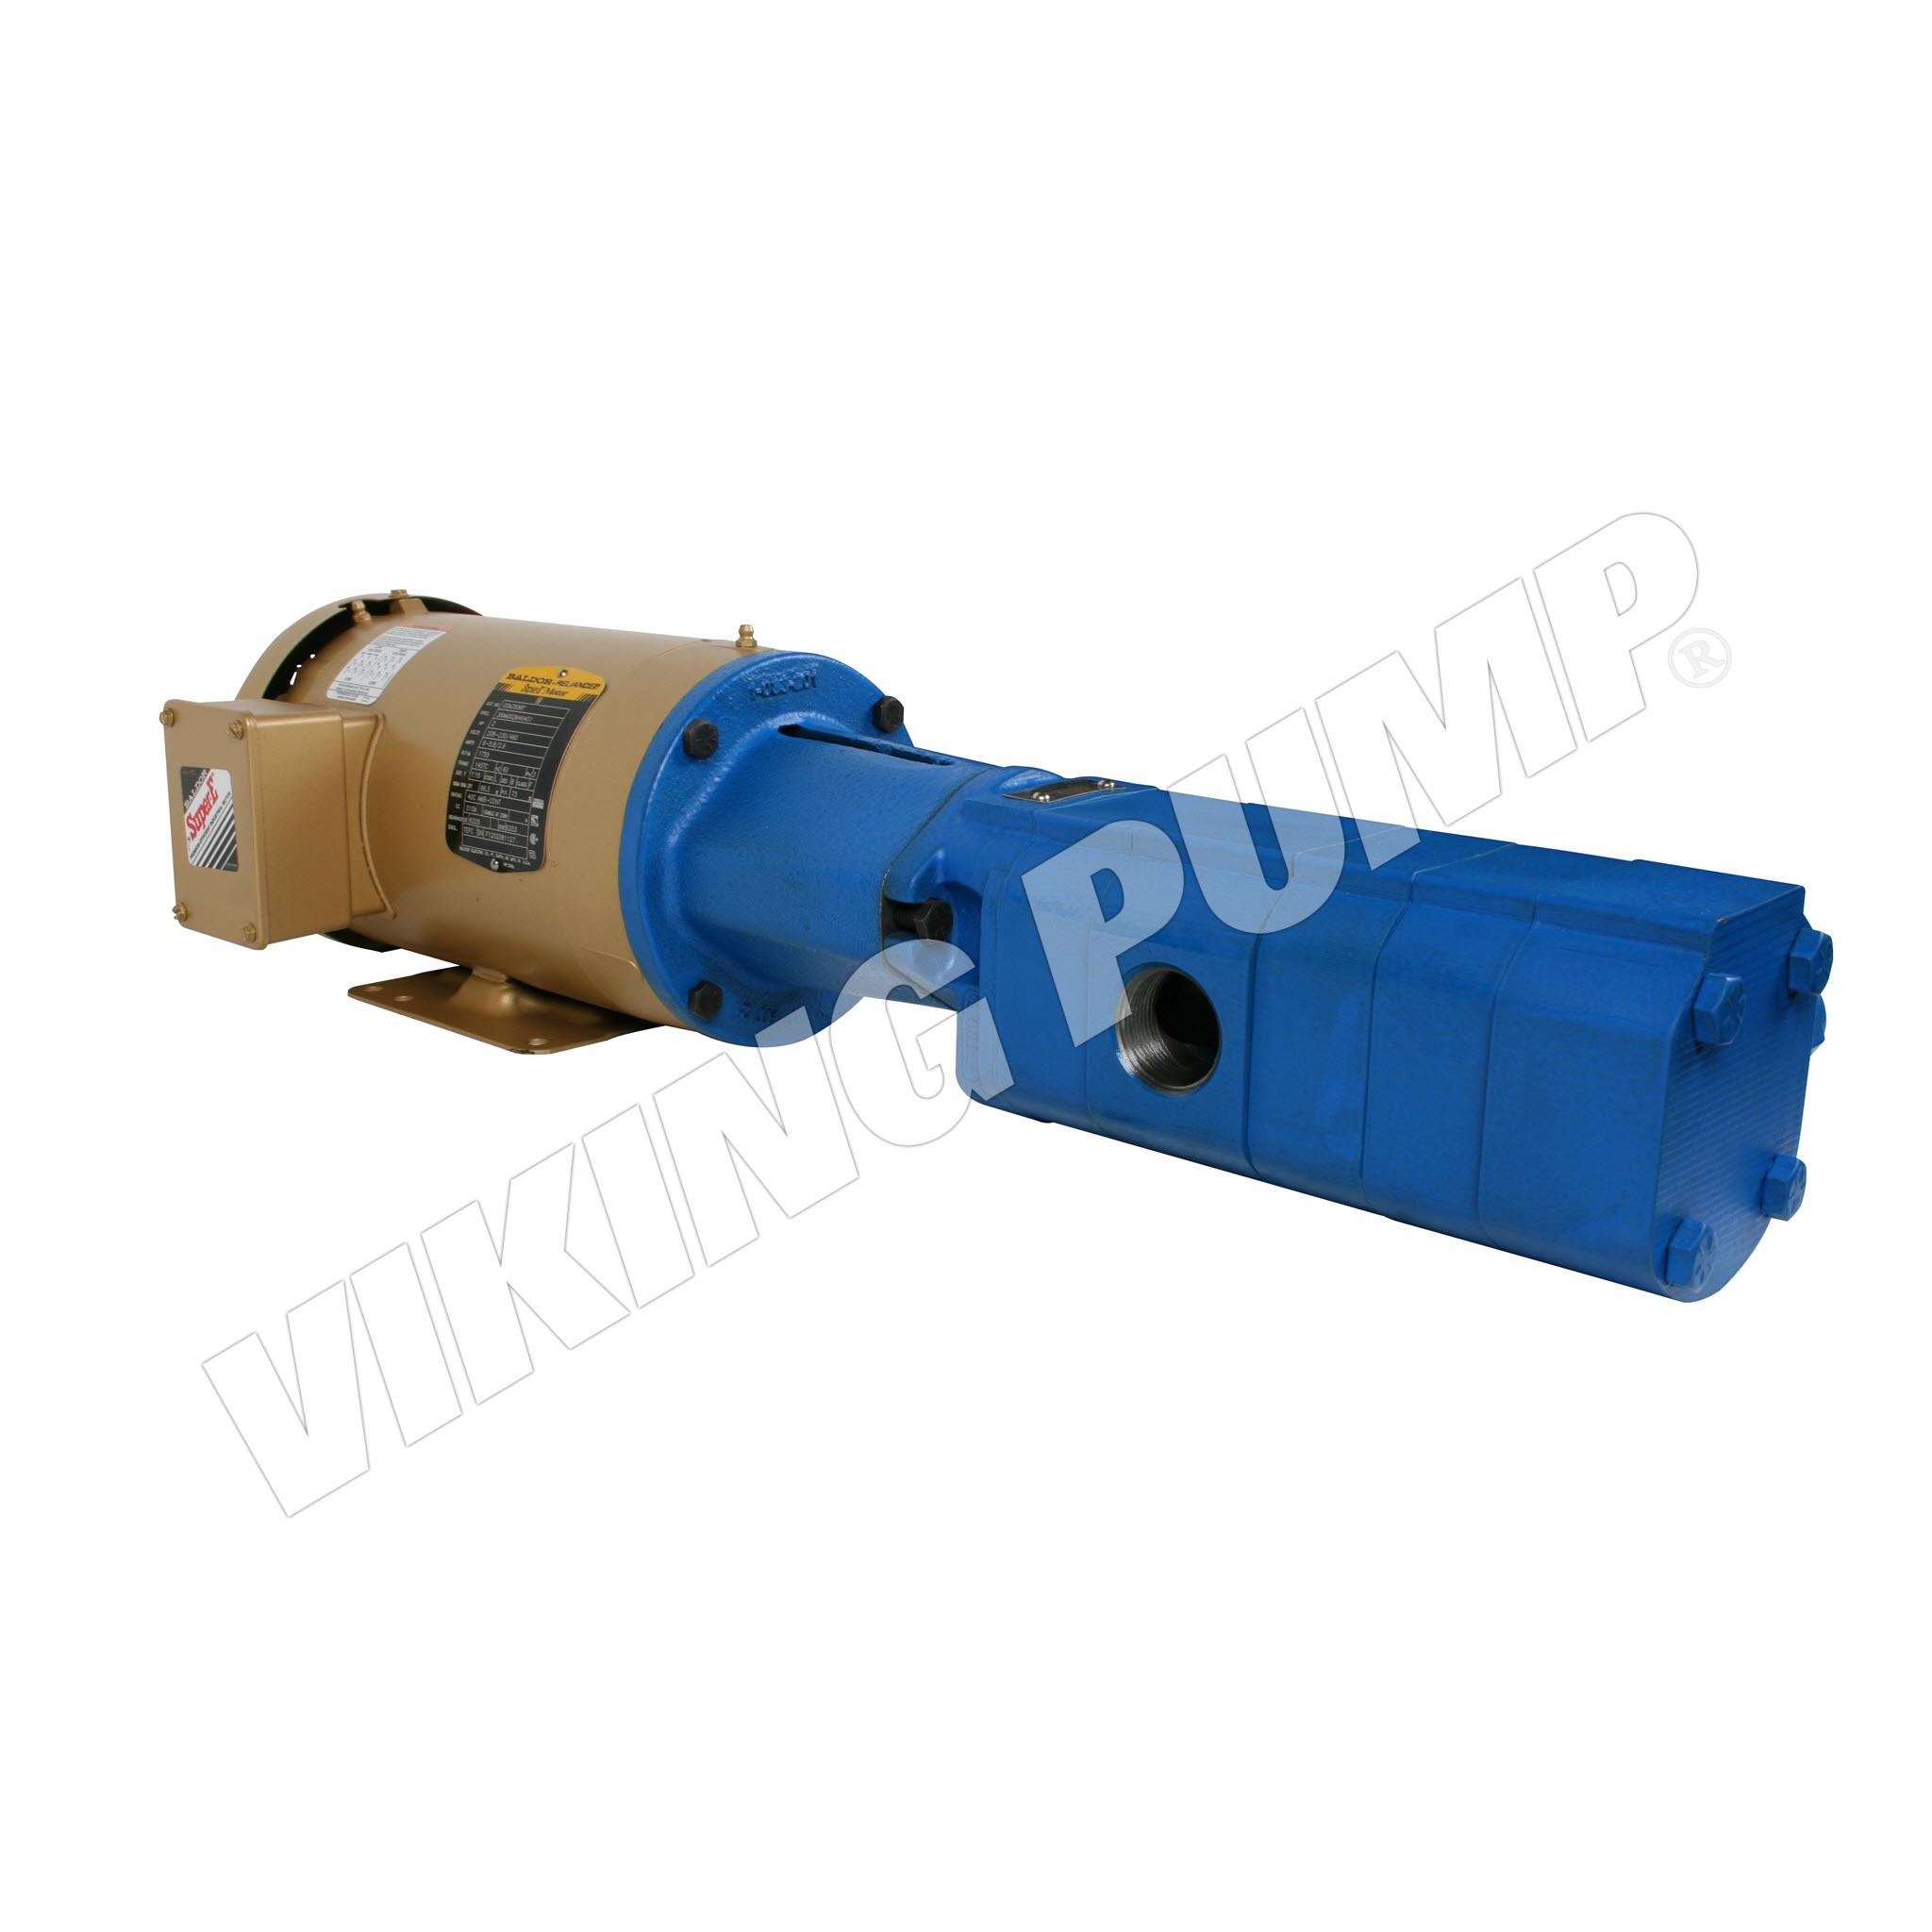 Model SG-0732, Flange Mount, Lip Seal, Relief Valve, M Drive Unit